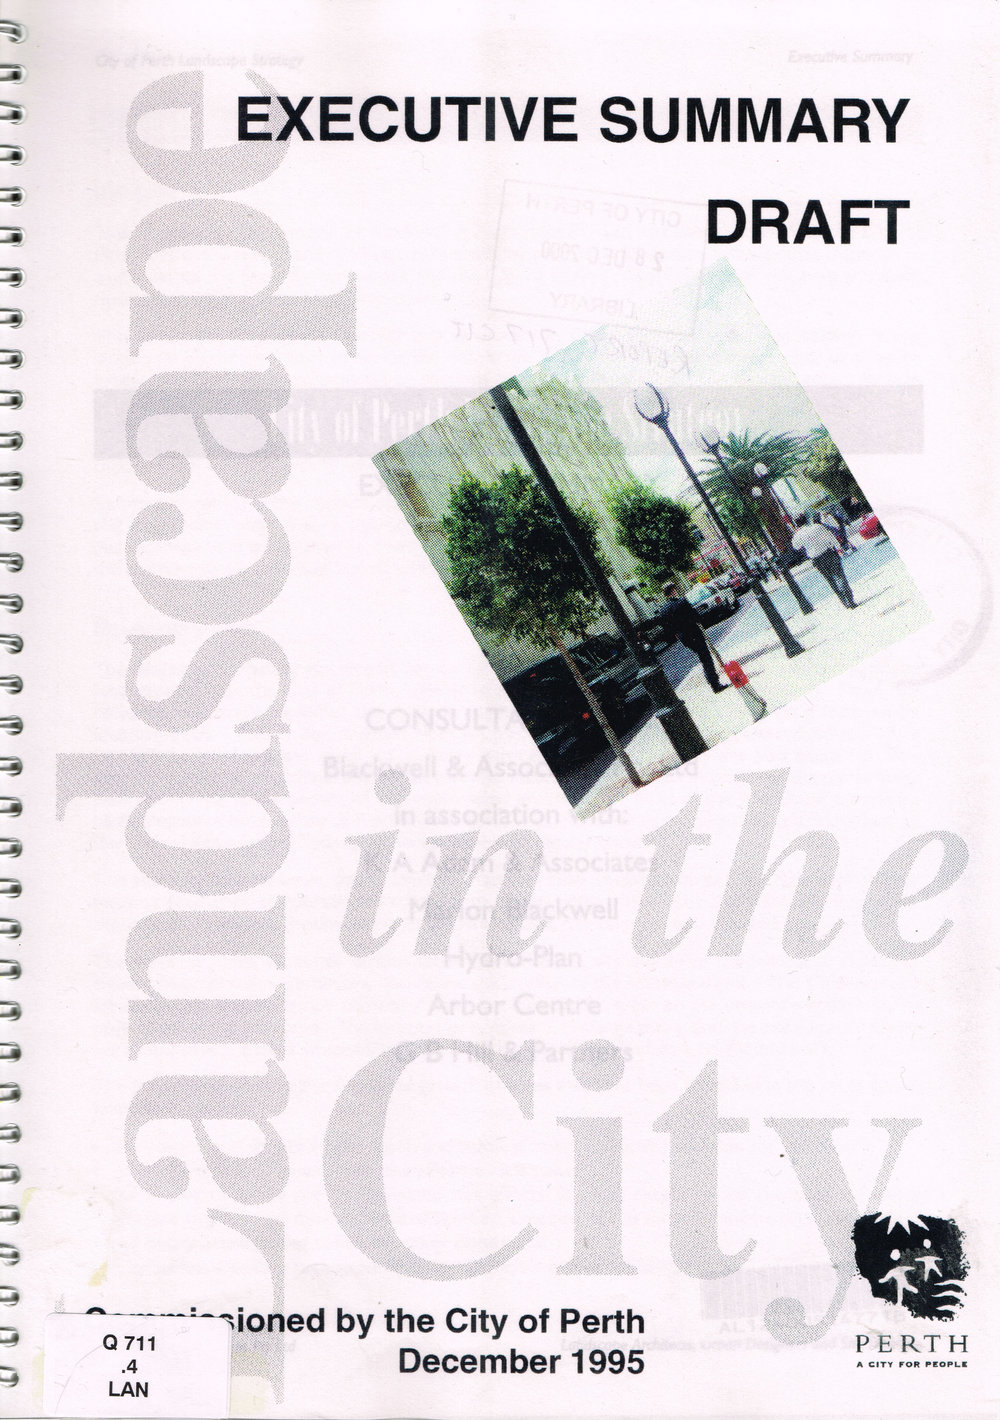 City of Perth Landscape Strategy : Executive Summary (Draft)   Blackwell & Associates Pty Ltd, commissioned by the City of Perth, December 1995